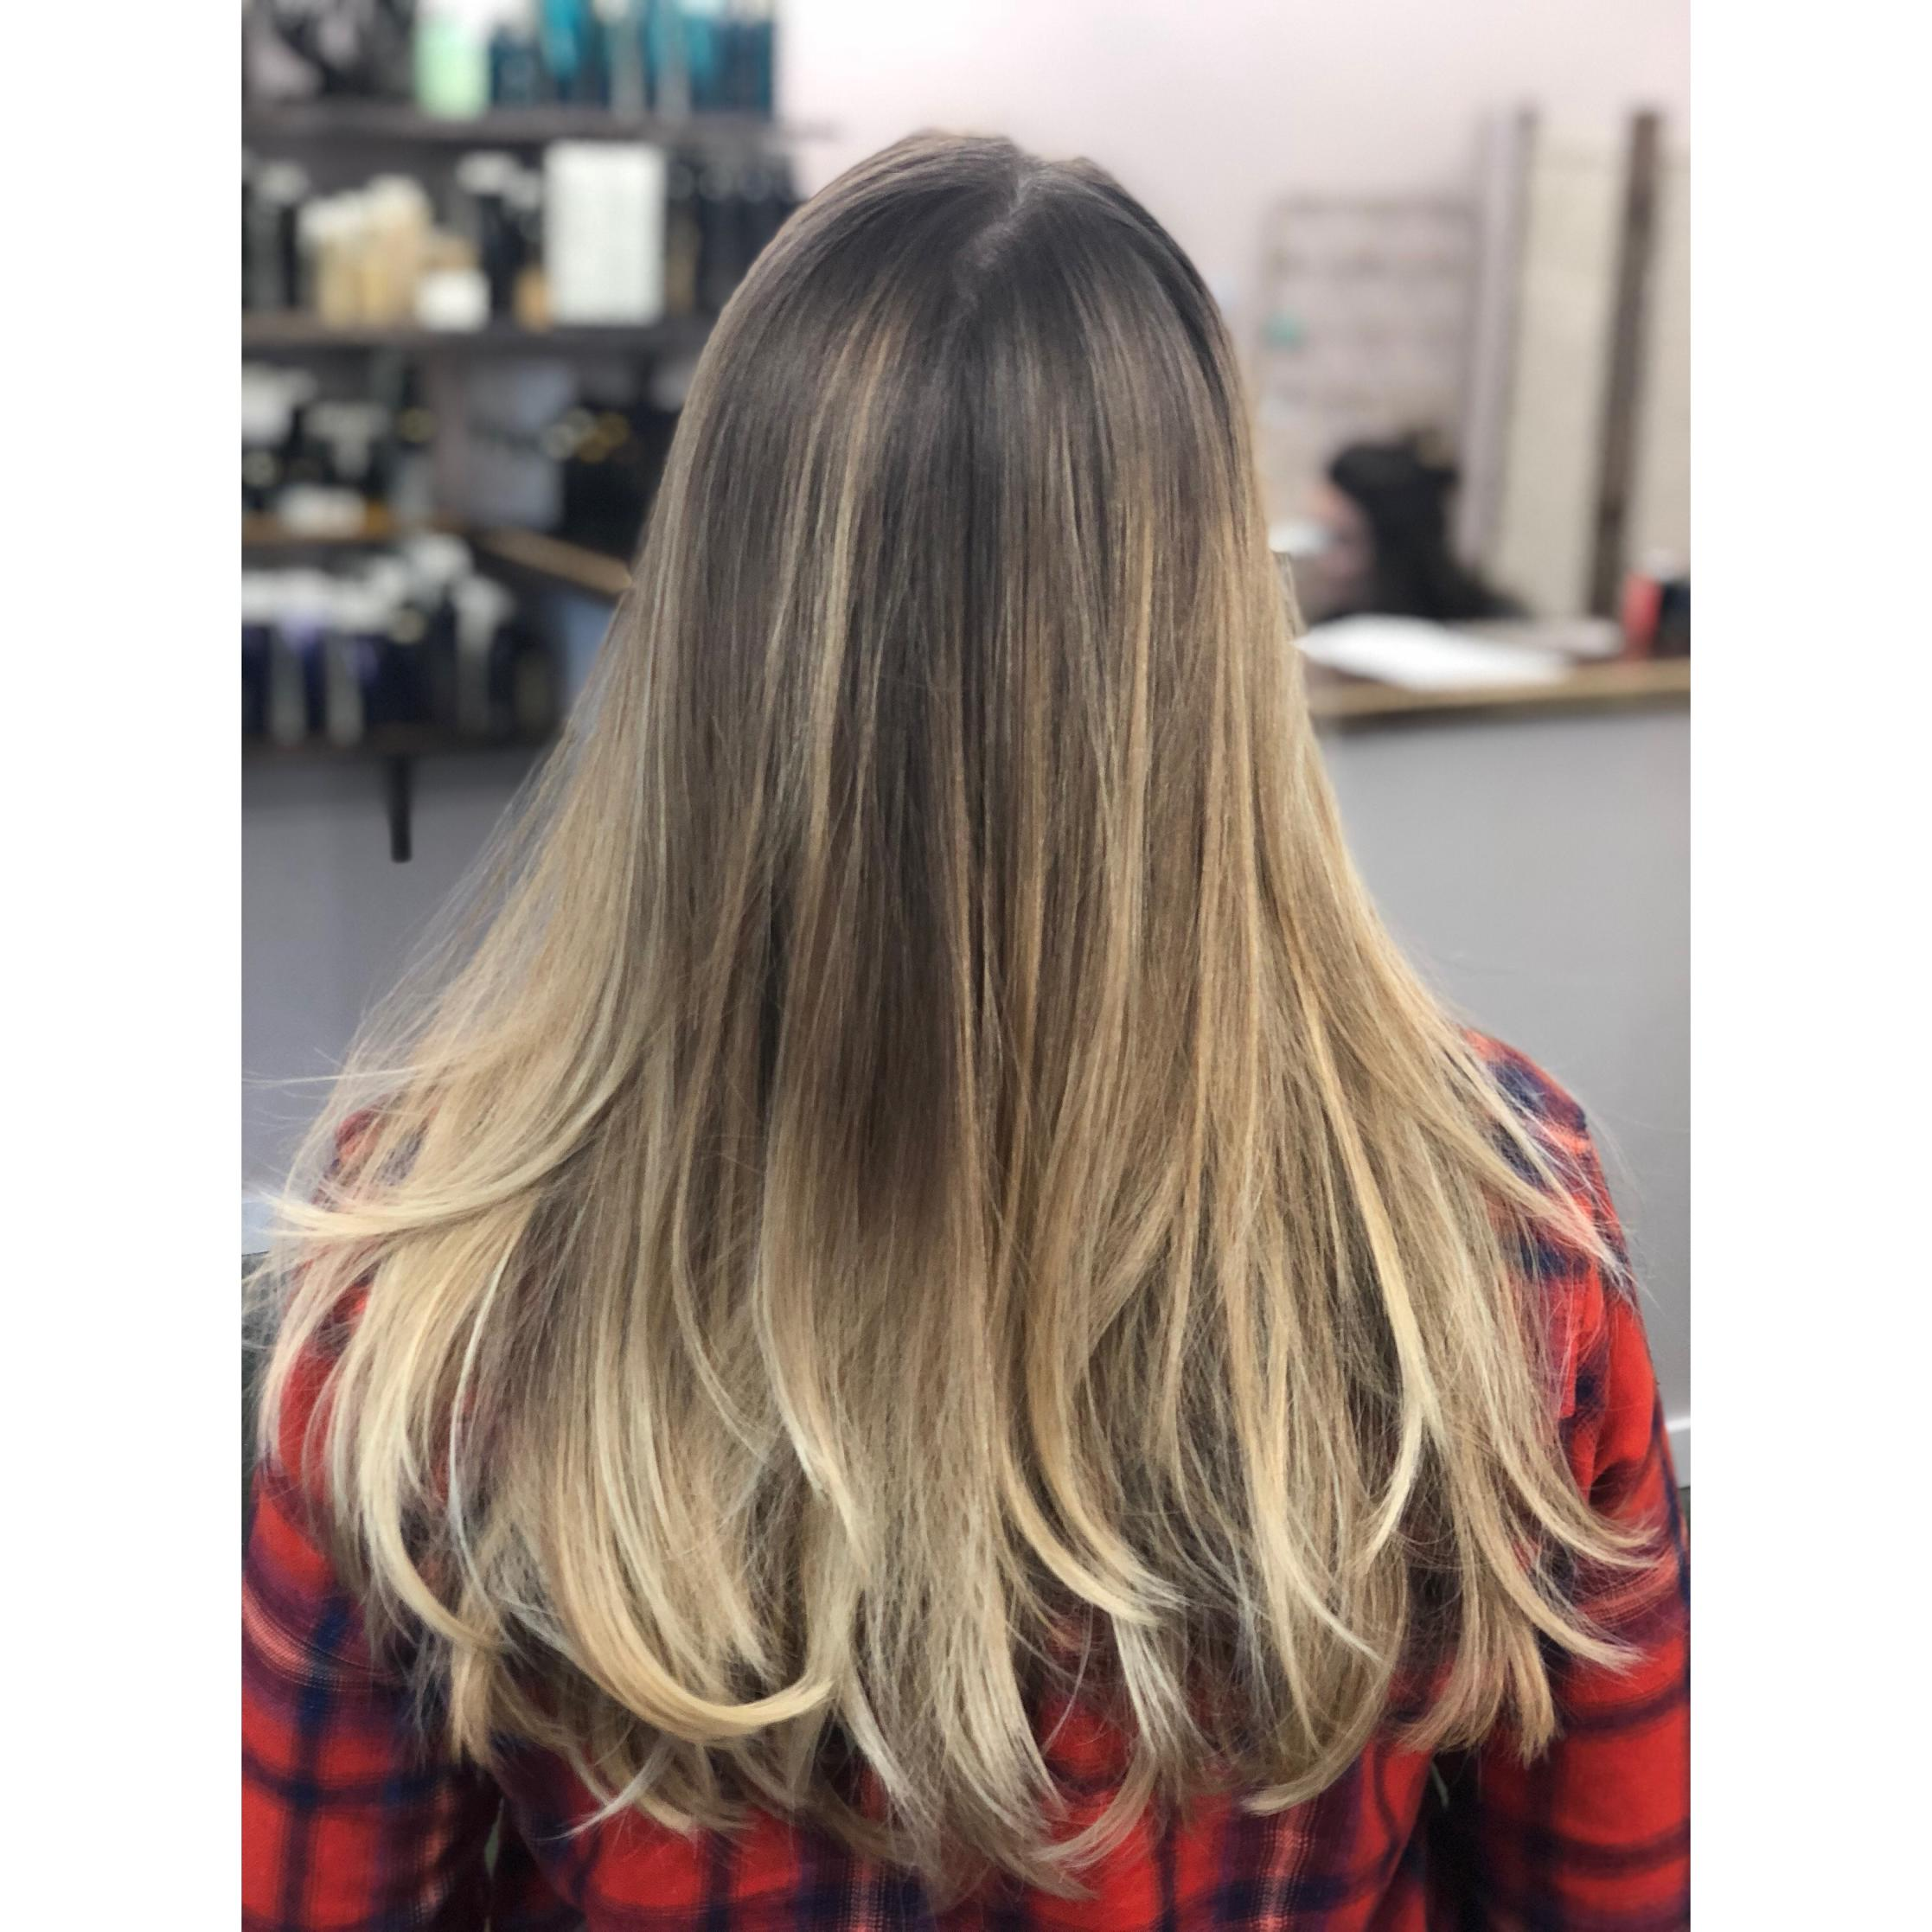 Ombre Look A Guide To Balayage Ombré Foils Freebird Beauty Shop